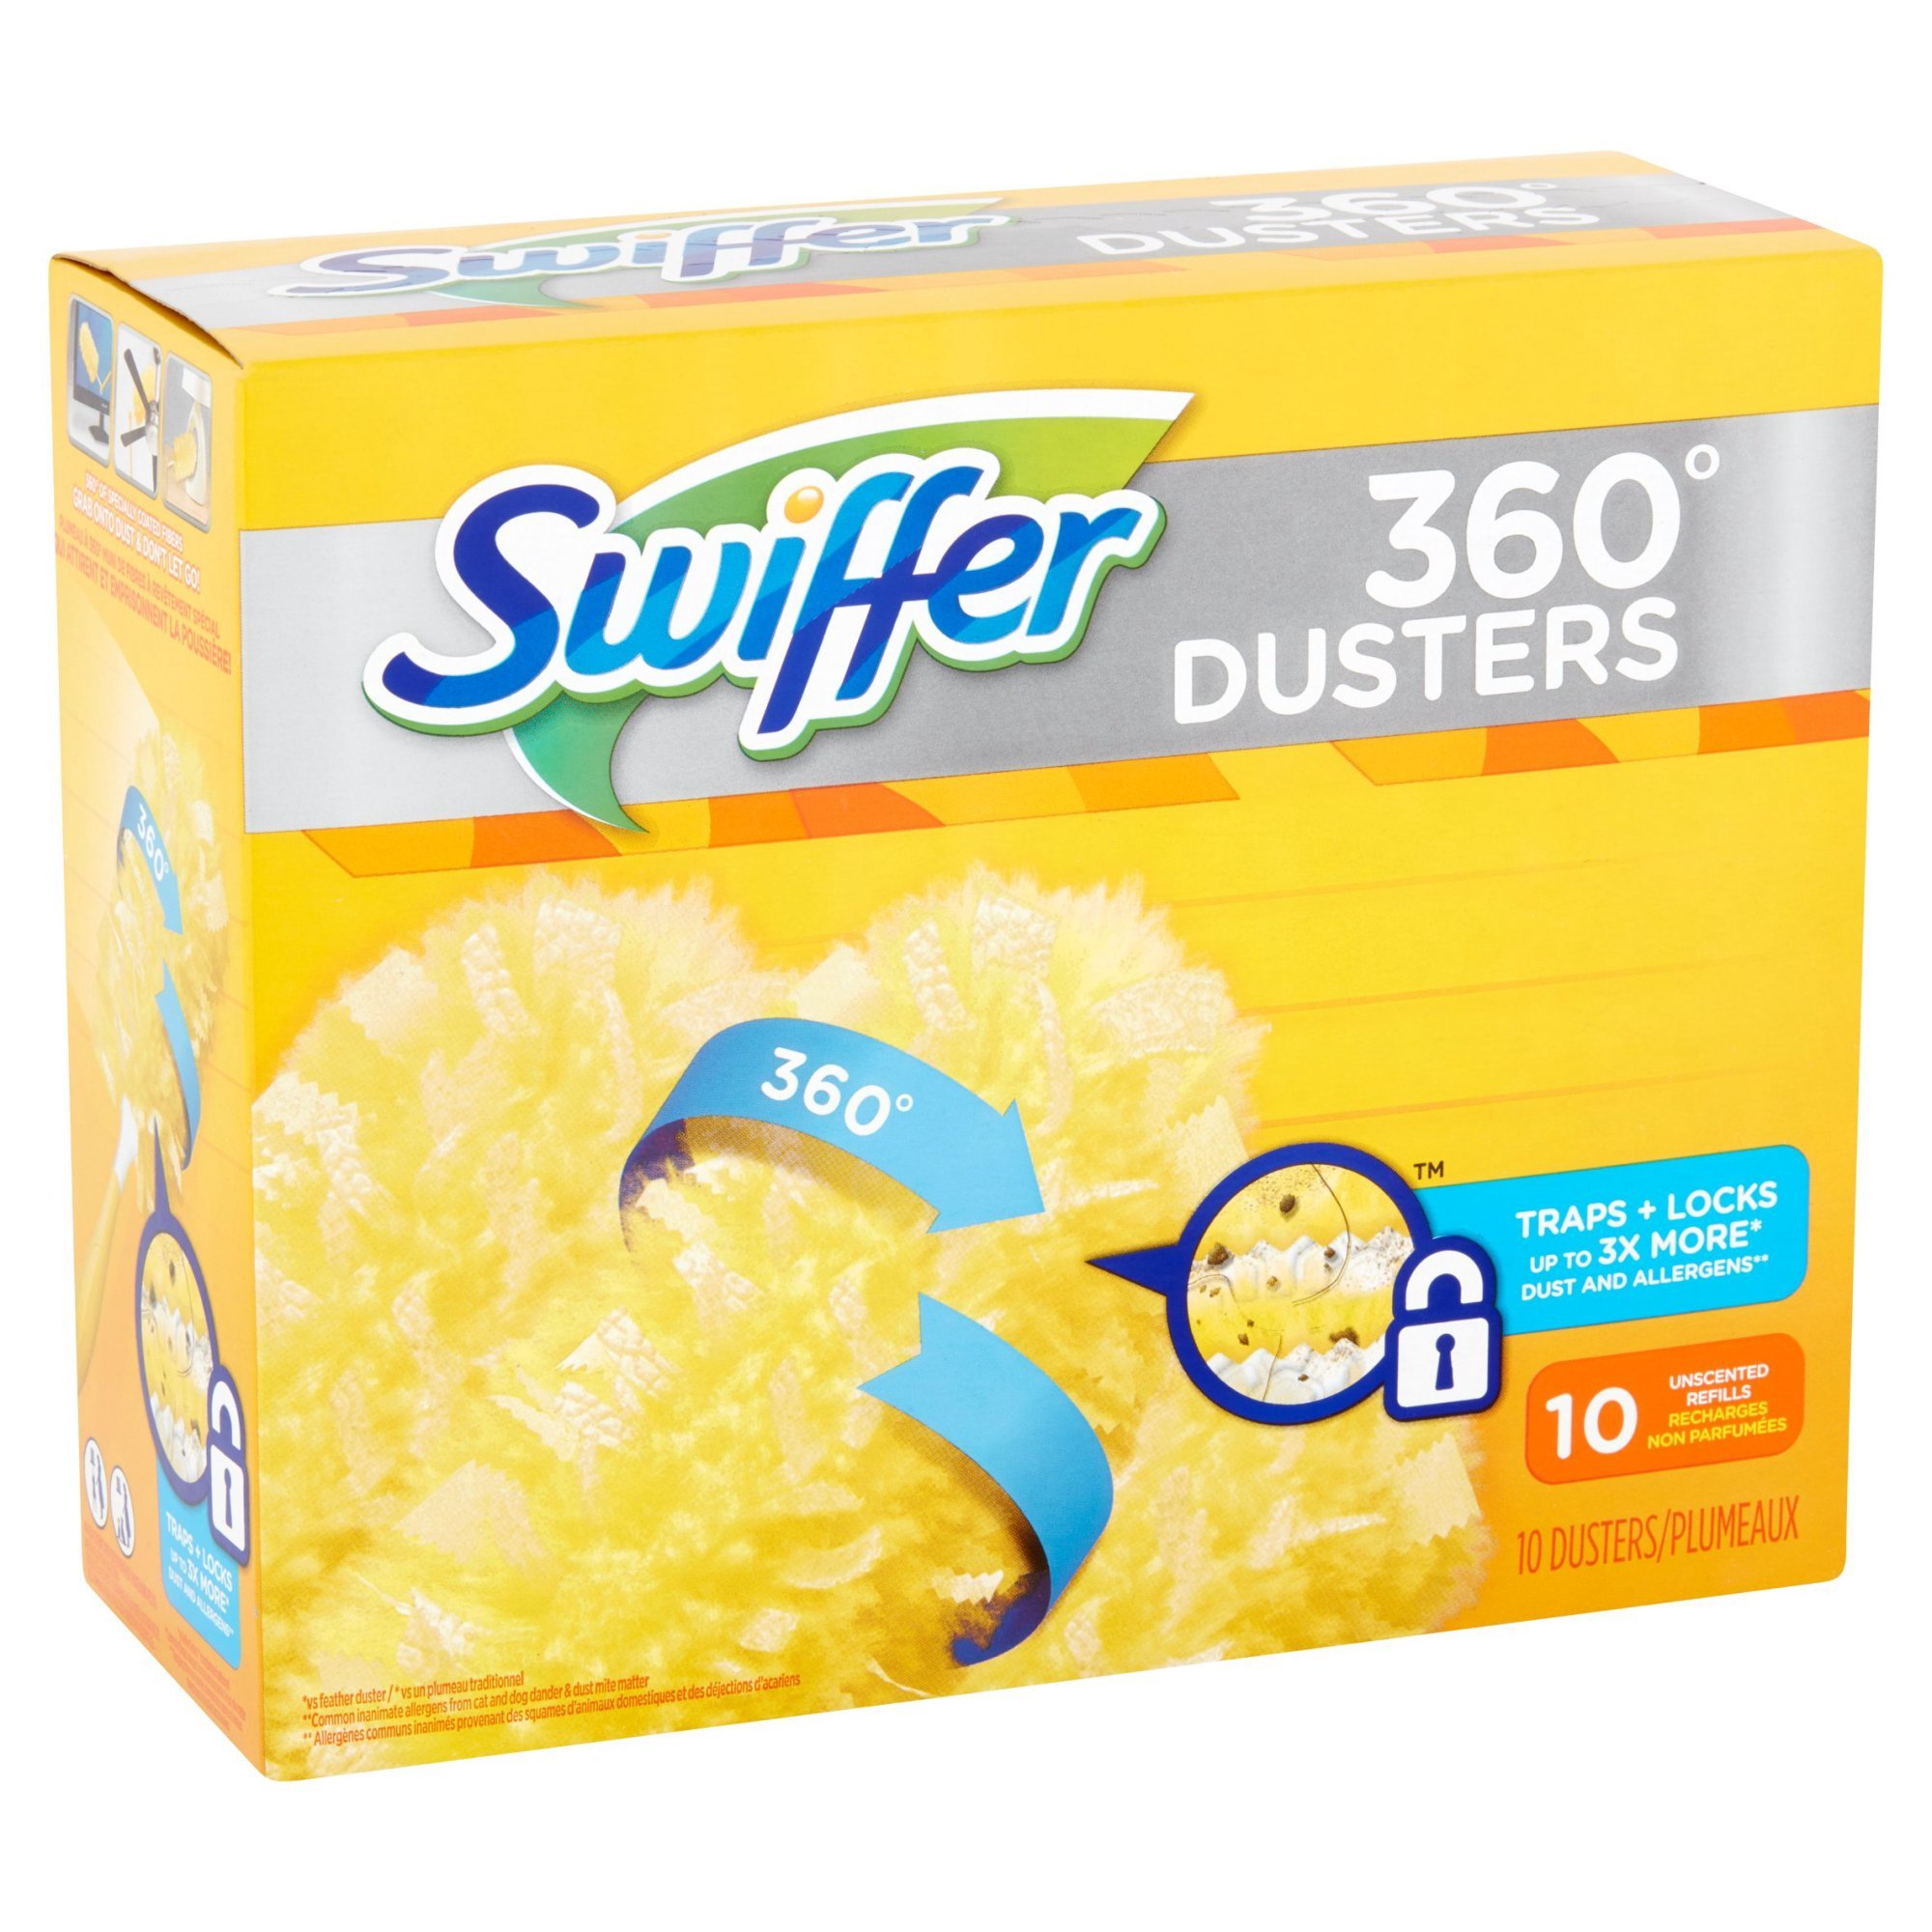 Swiffer 360 Dusters Refills, 10 Count Duster Refill (Pack of 5)